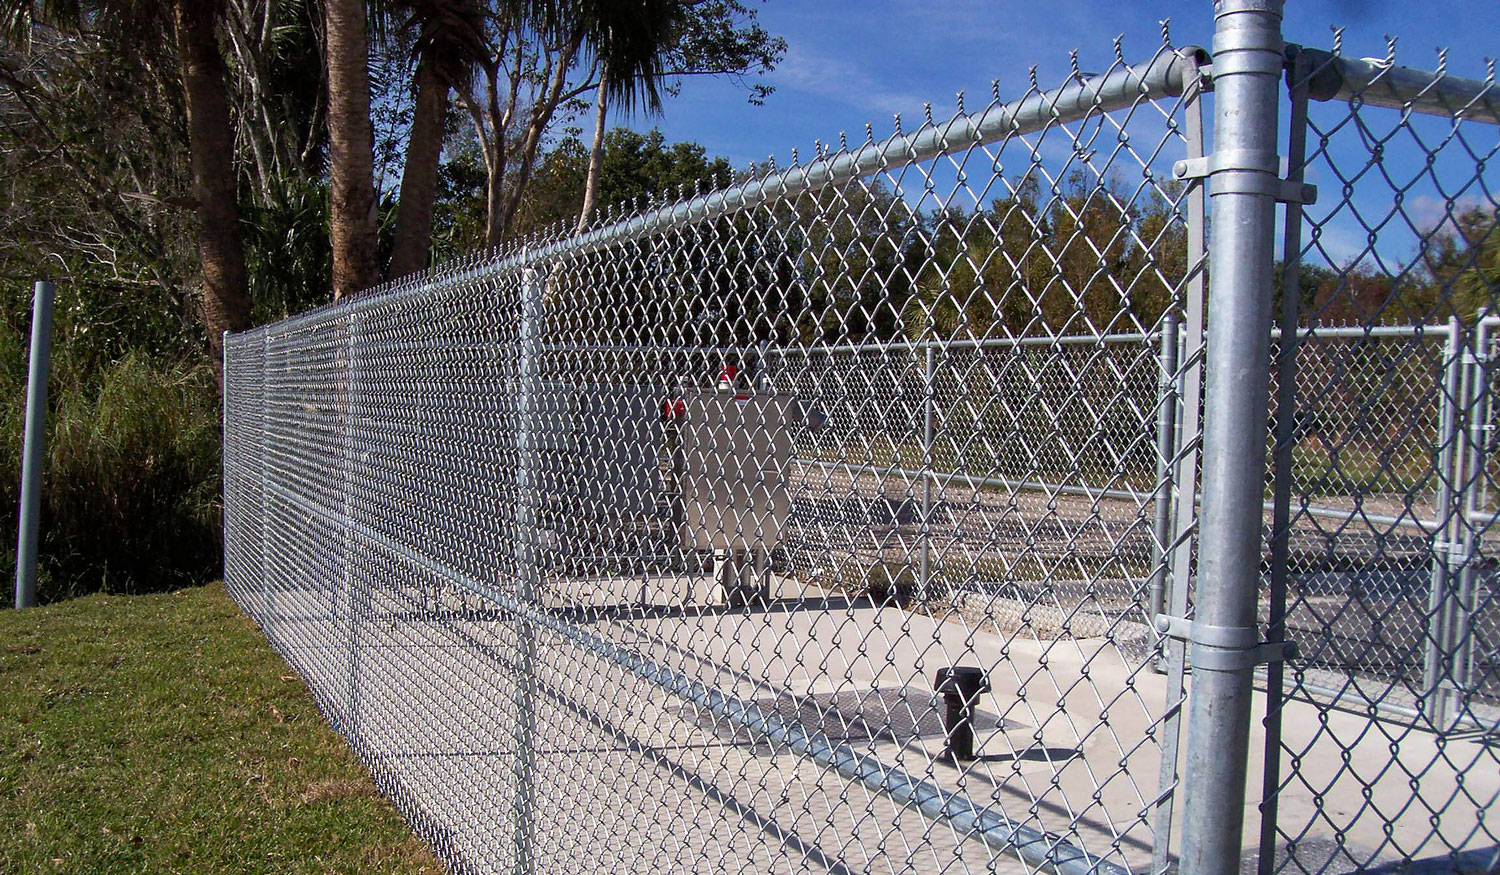 Chain-Link-Fence 勾花网